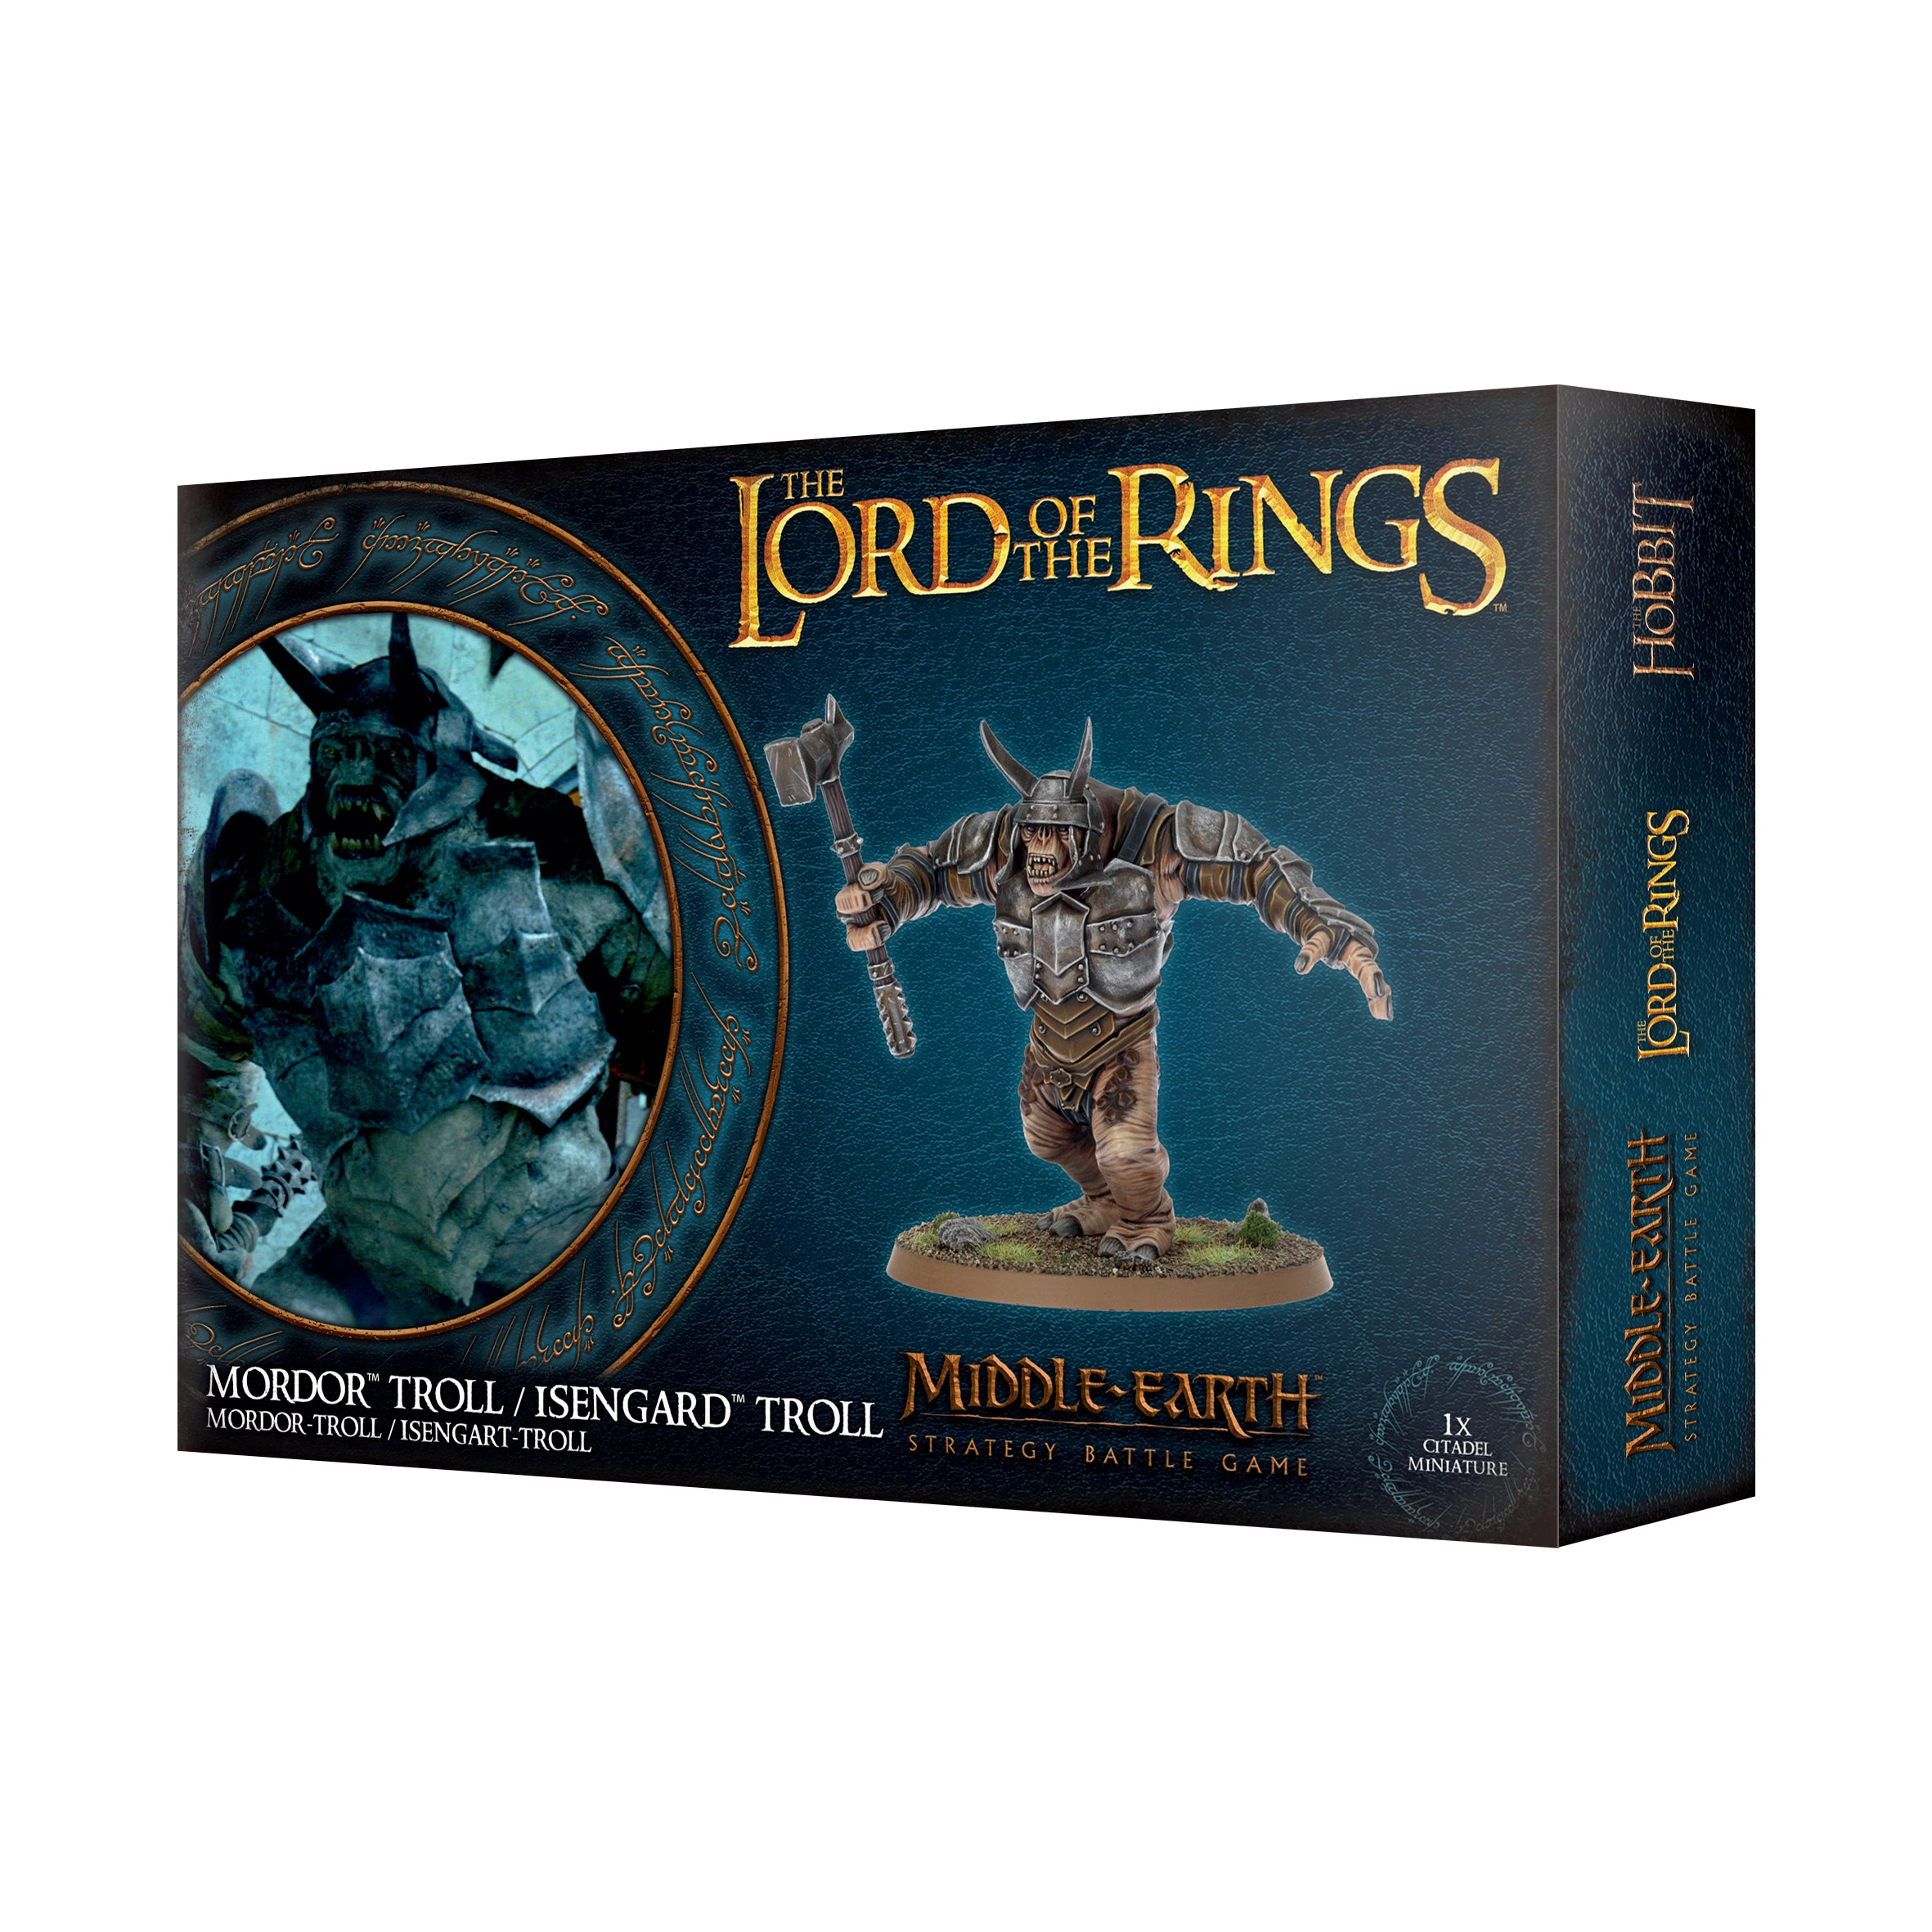 Mordor Troll / Isengard Troll (Middle-Earth Strategy Battle Game) | Mythicos